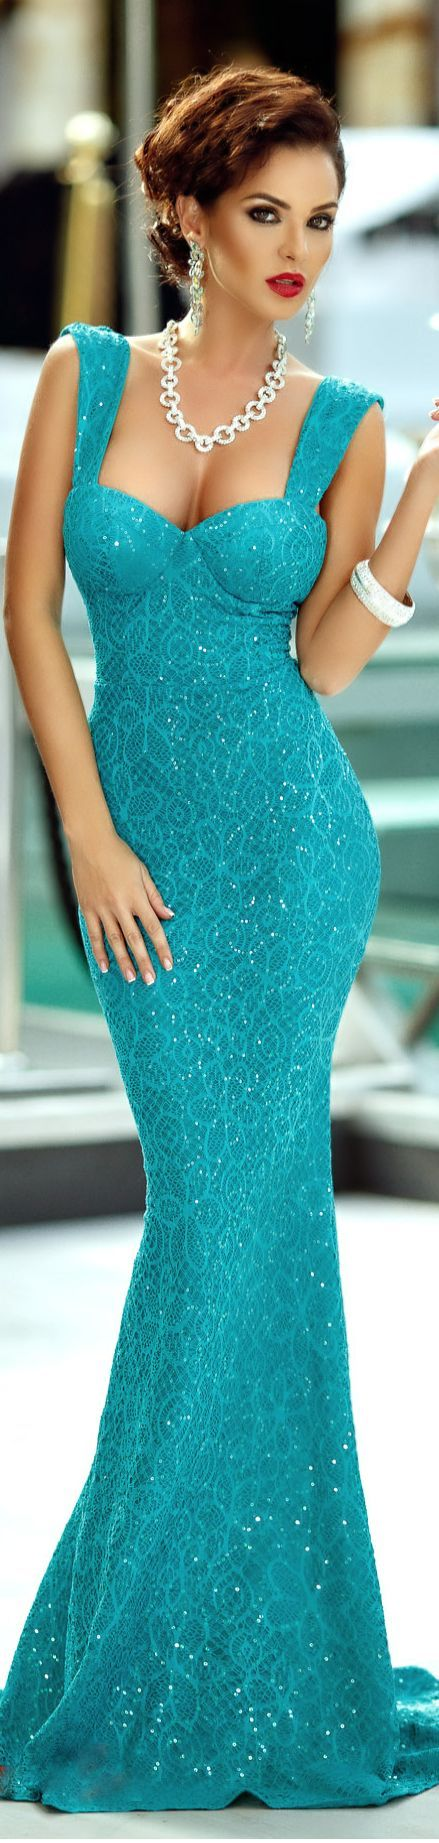 dress with sequined lace turquoise: